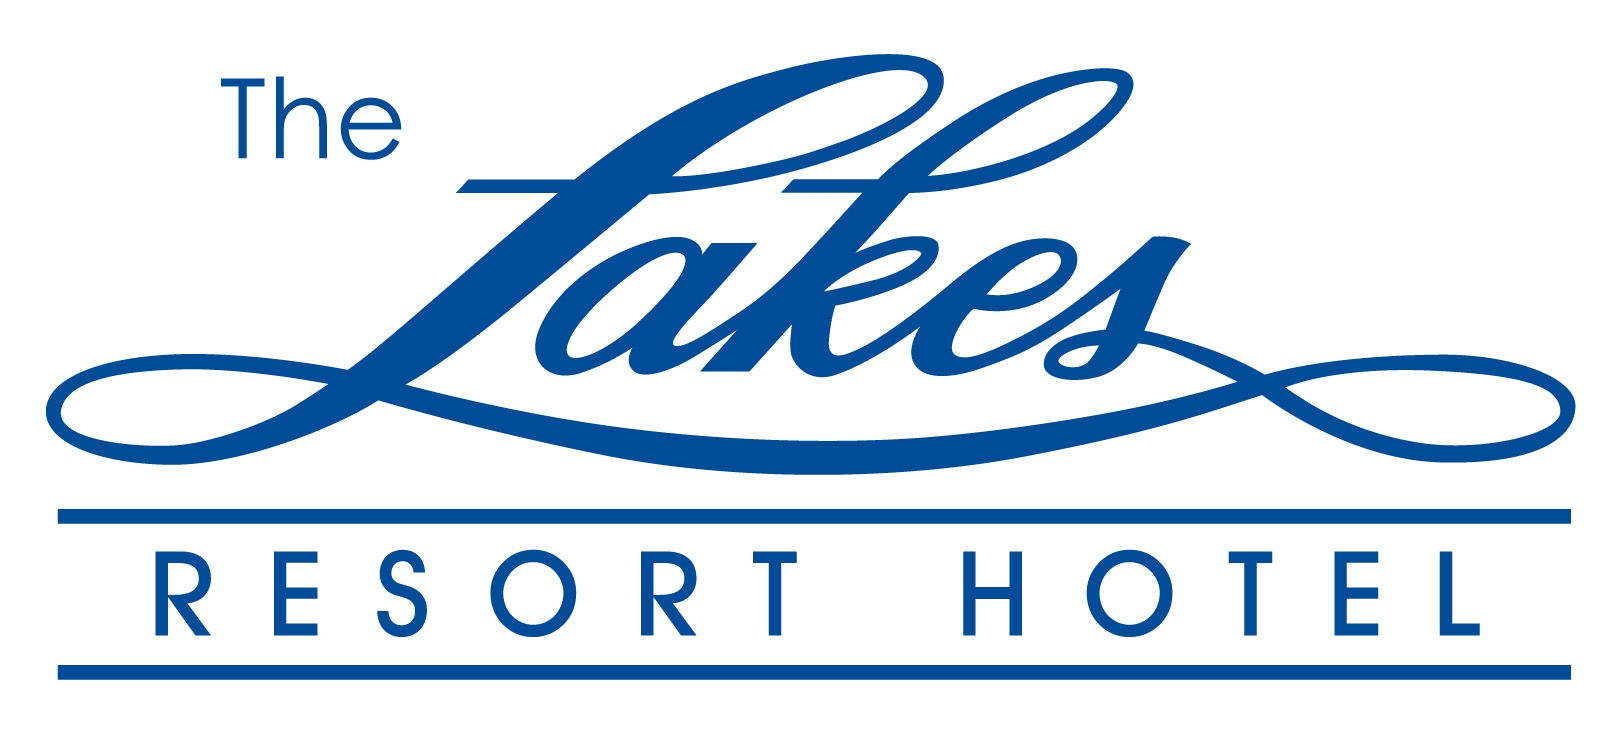 Lakes Resort Hotel Logo and Images